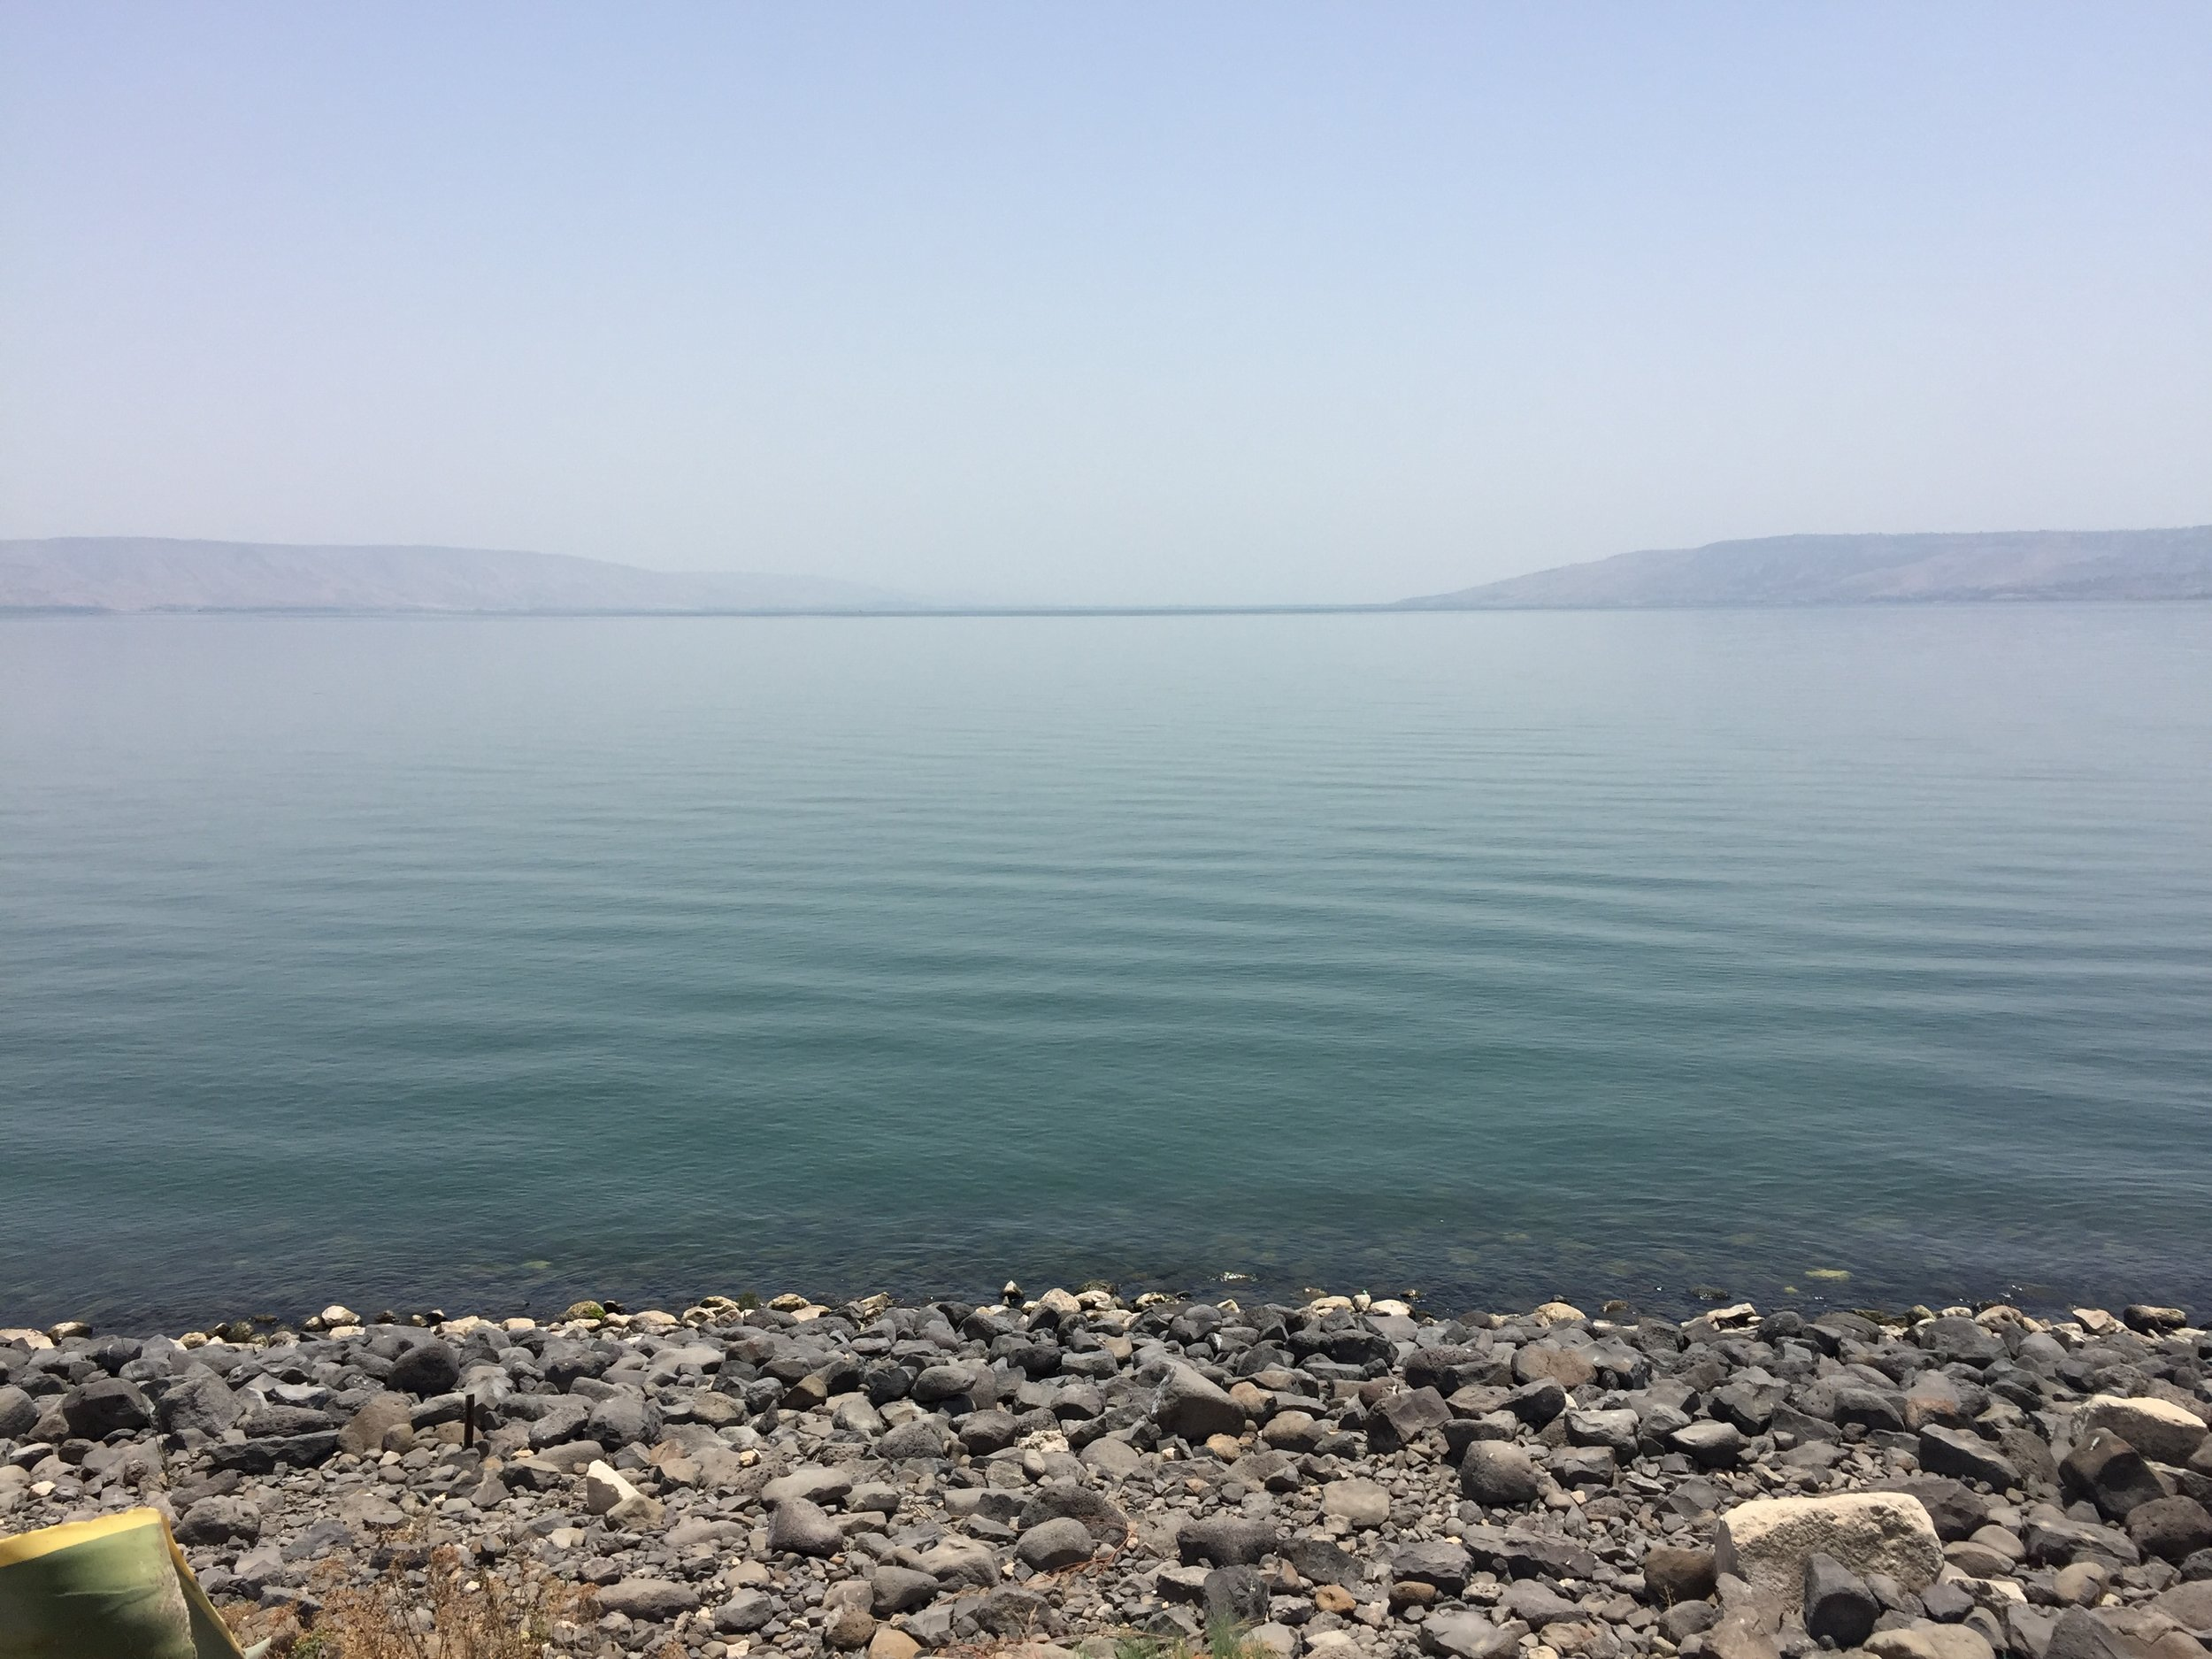 Sea of Galilee, Israel. Where Jesus preached and walked on water. So peaceful, so tranquil.